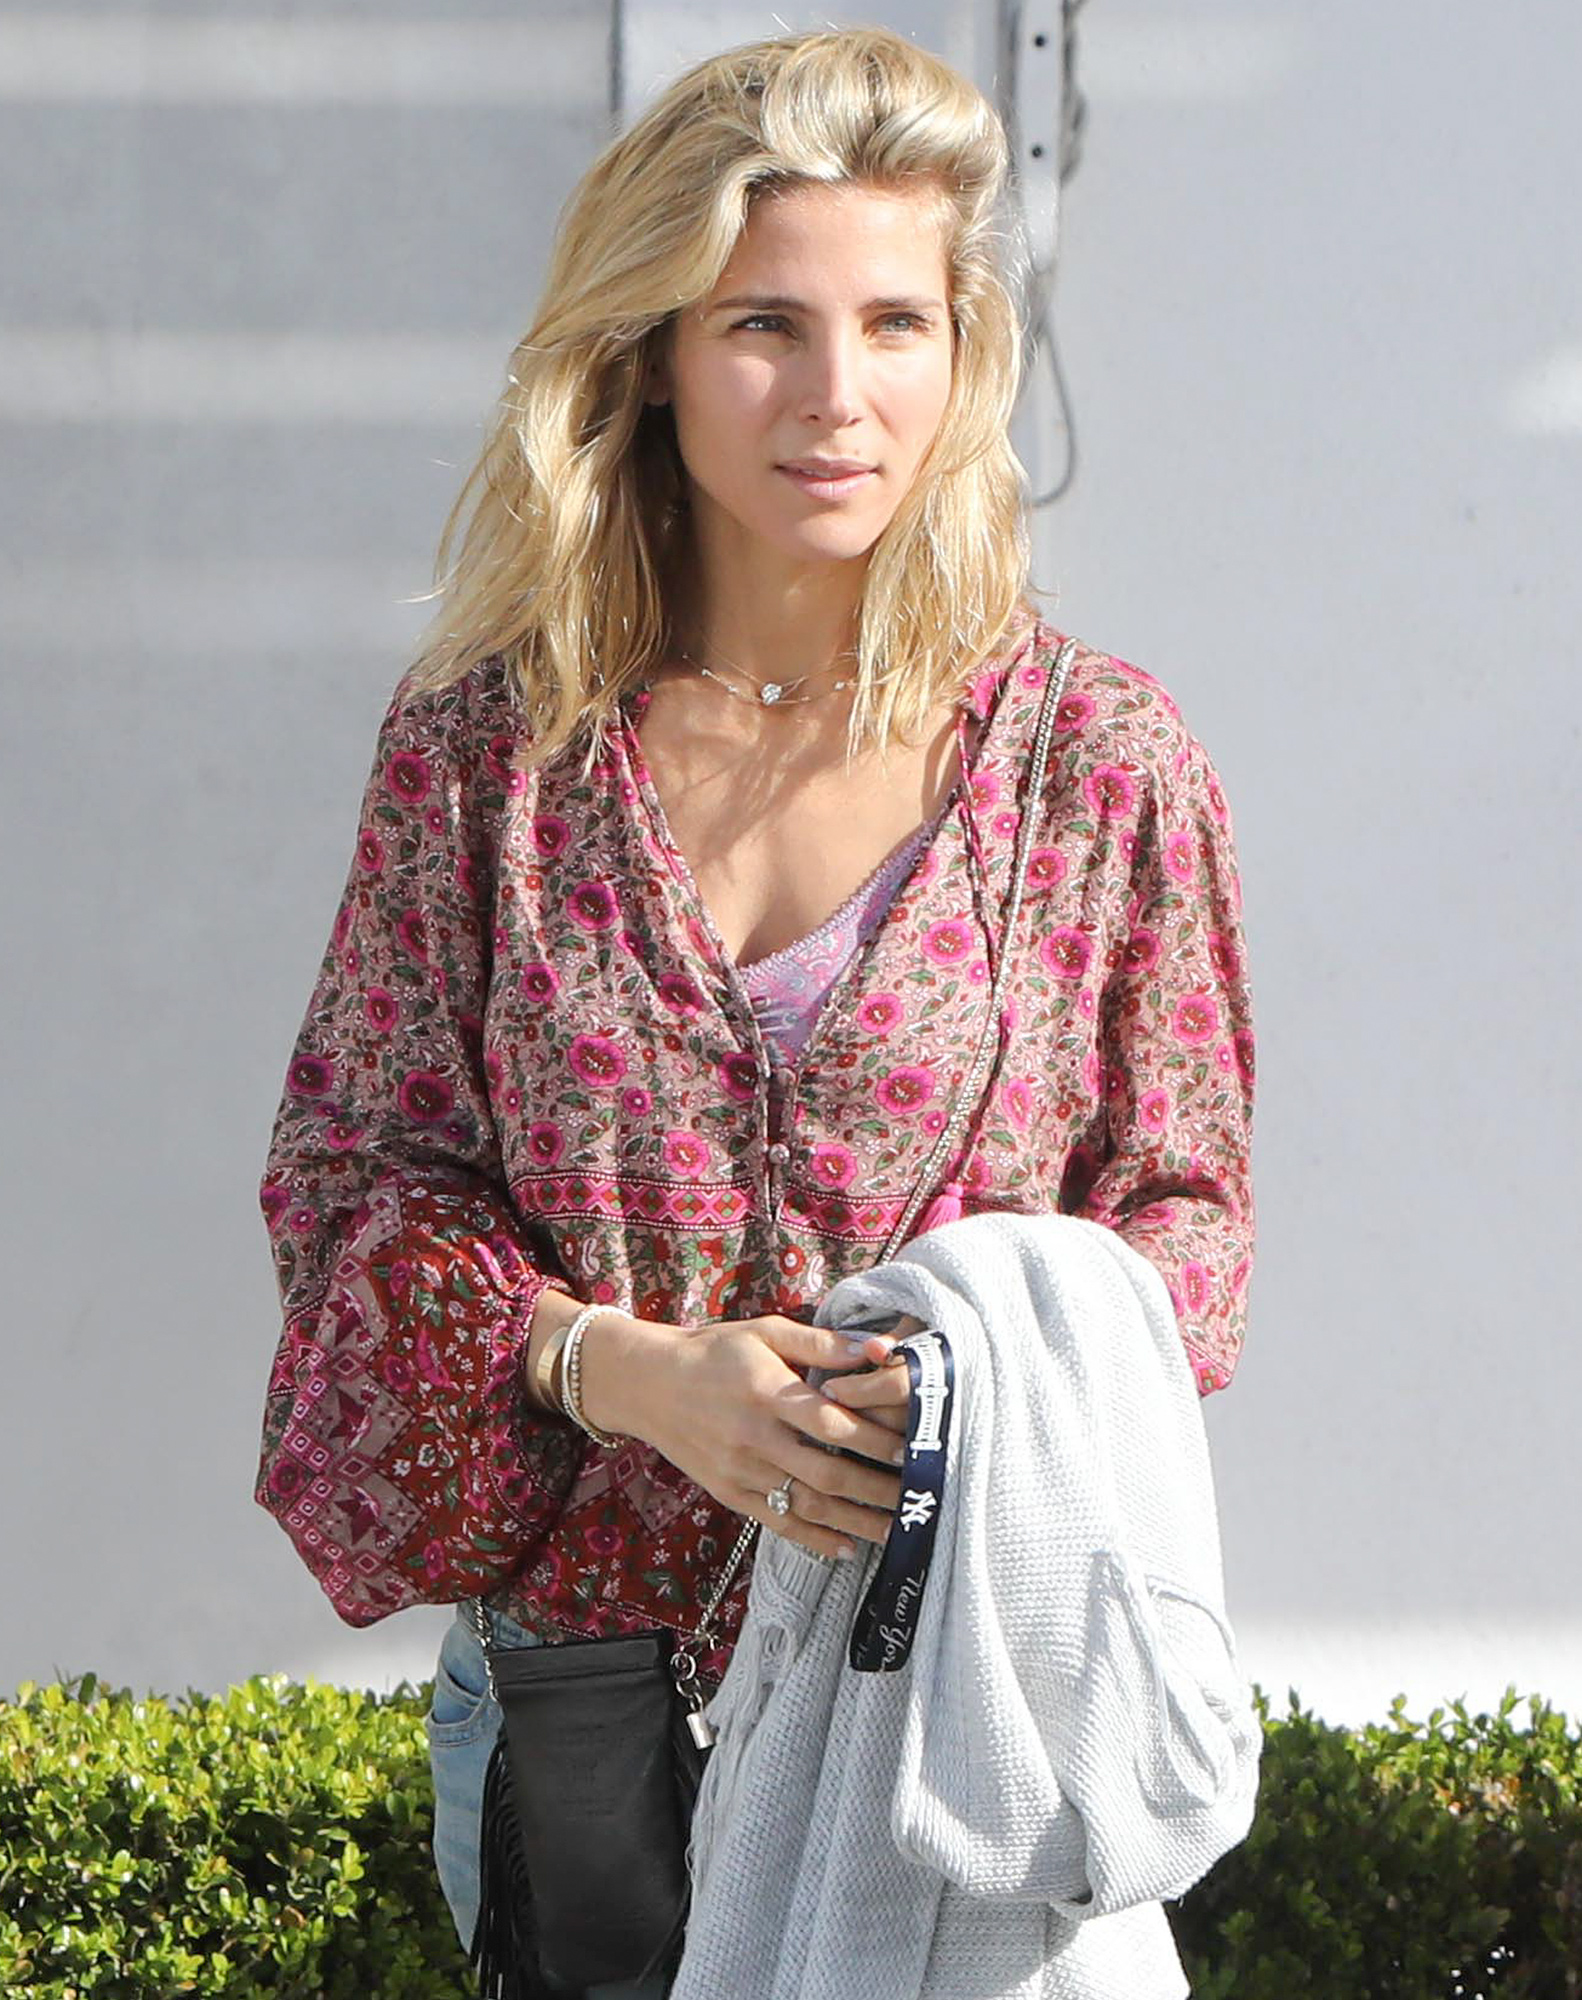 *EXCLUSIVE* Elsa Pataky goes makeup free for outing with her mom